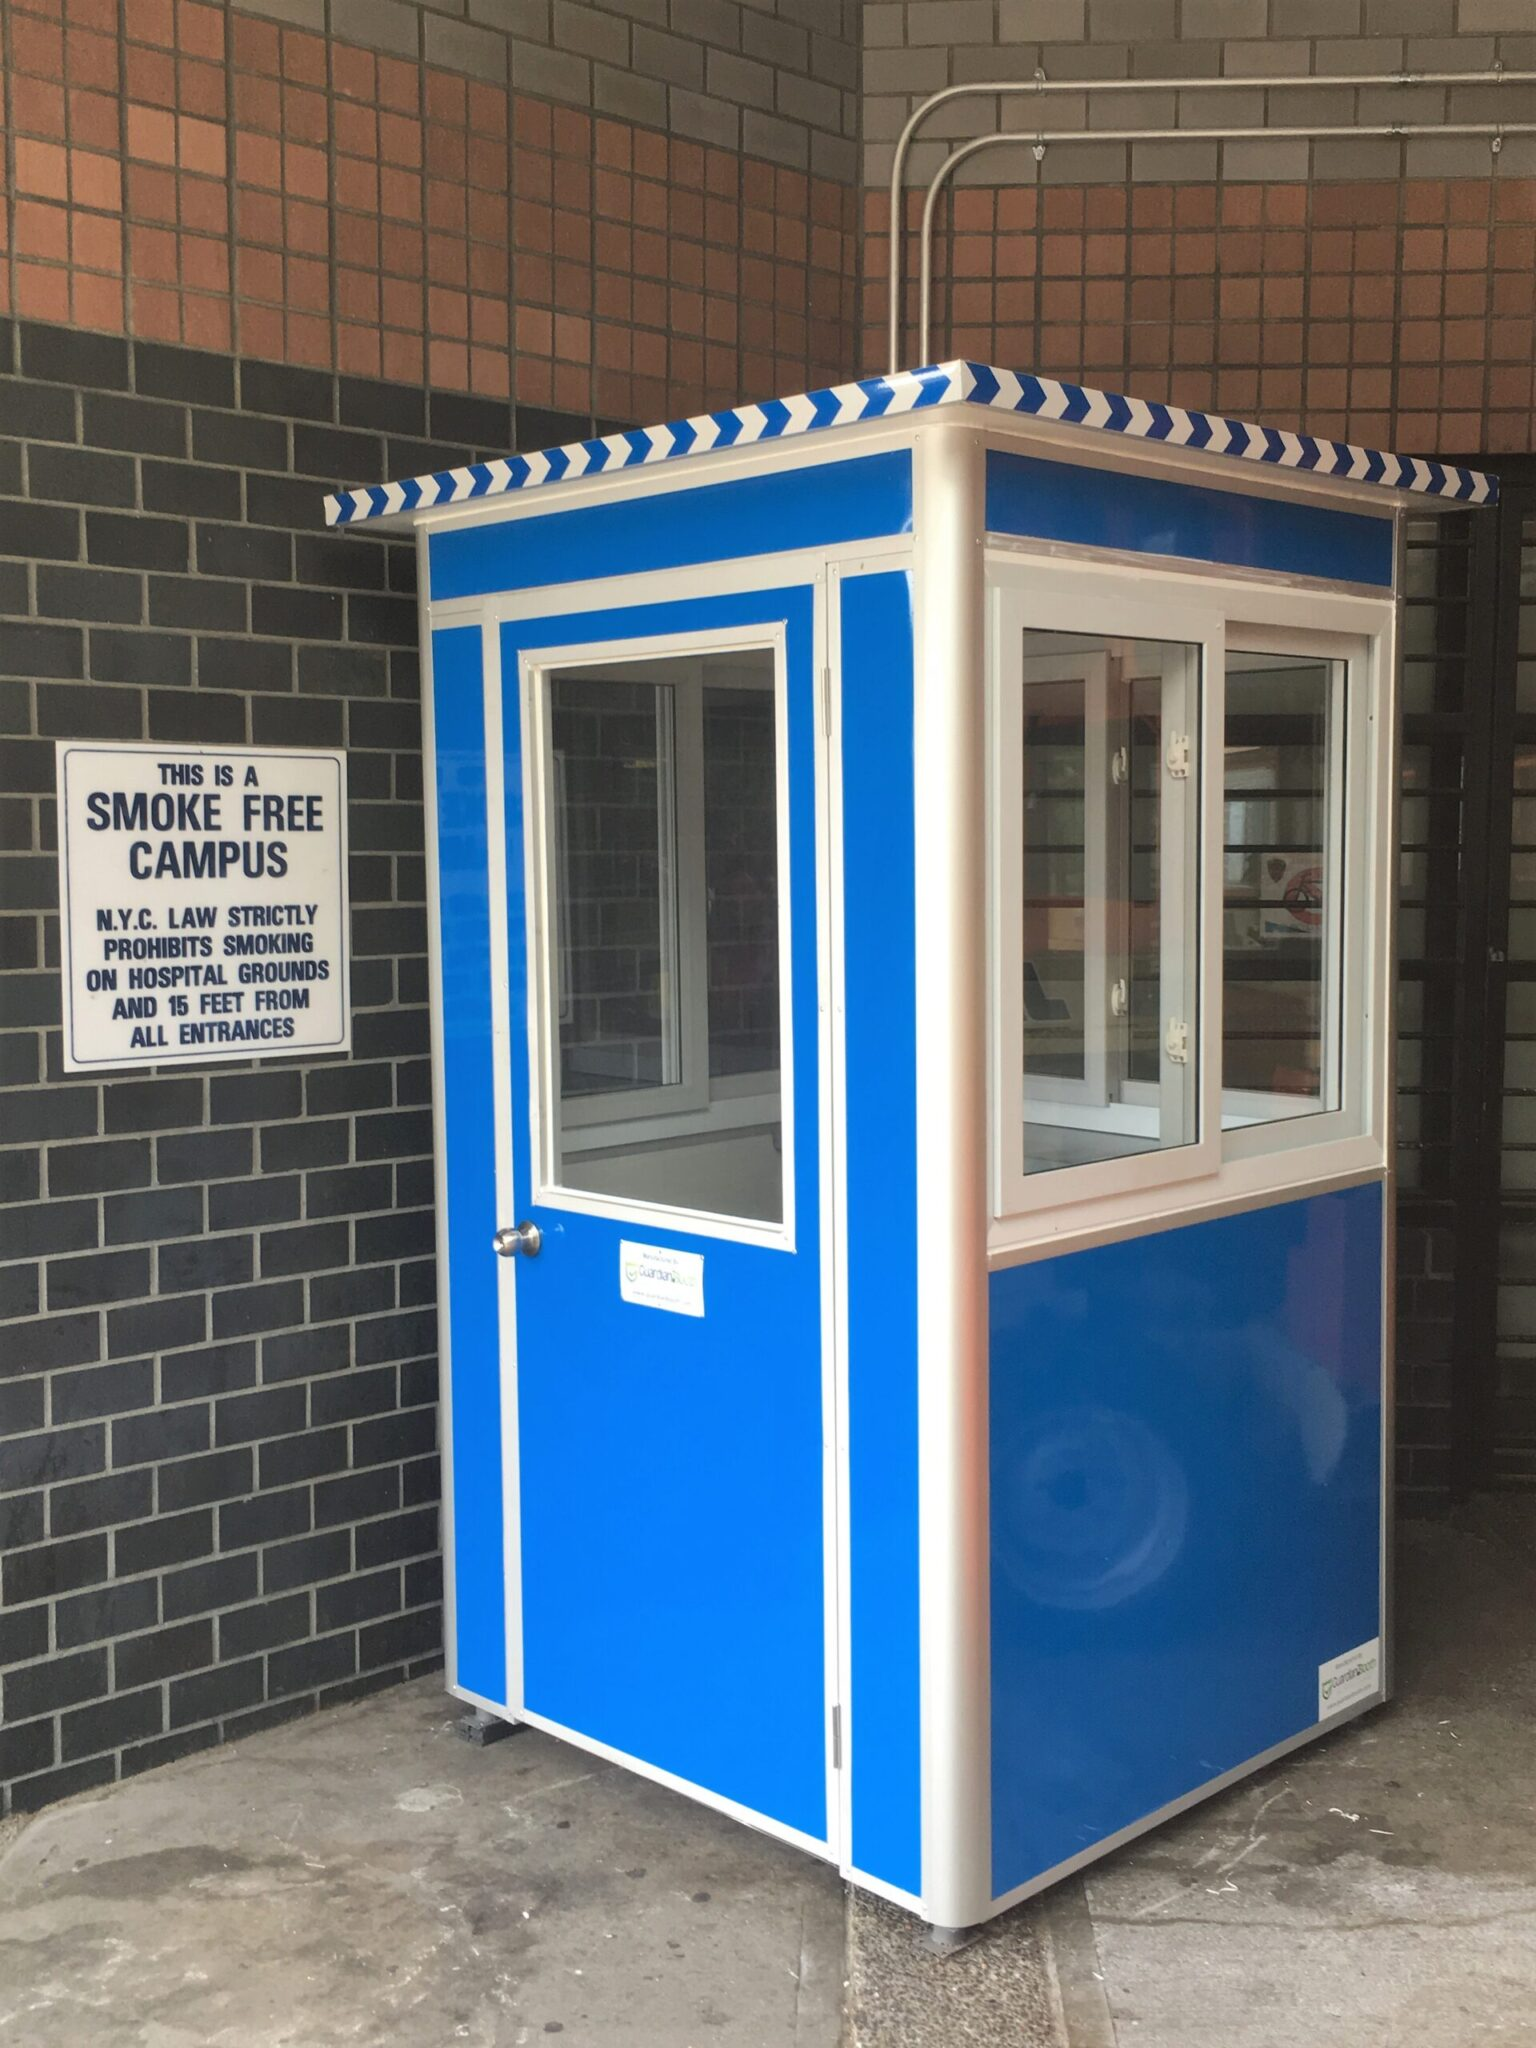 4x4 Security Guard Booth in Queens, NY outside Hospital Entrance, With Sliding Windows, Swing Door, and Baseboard Heaters (2)